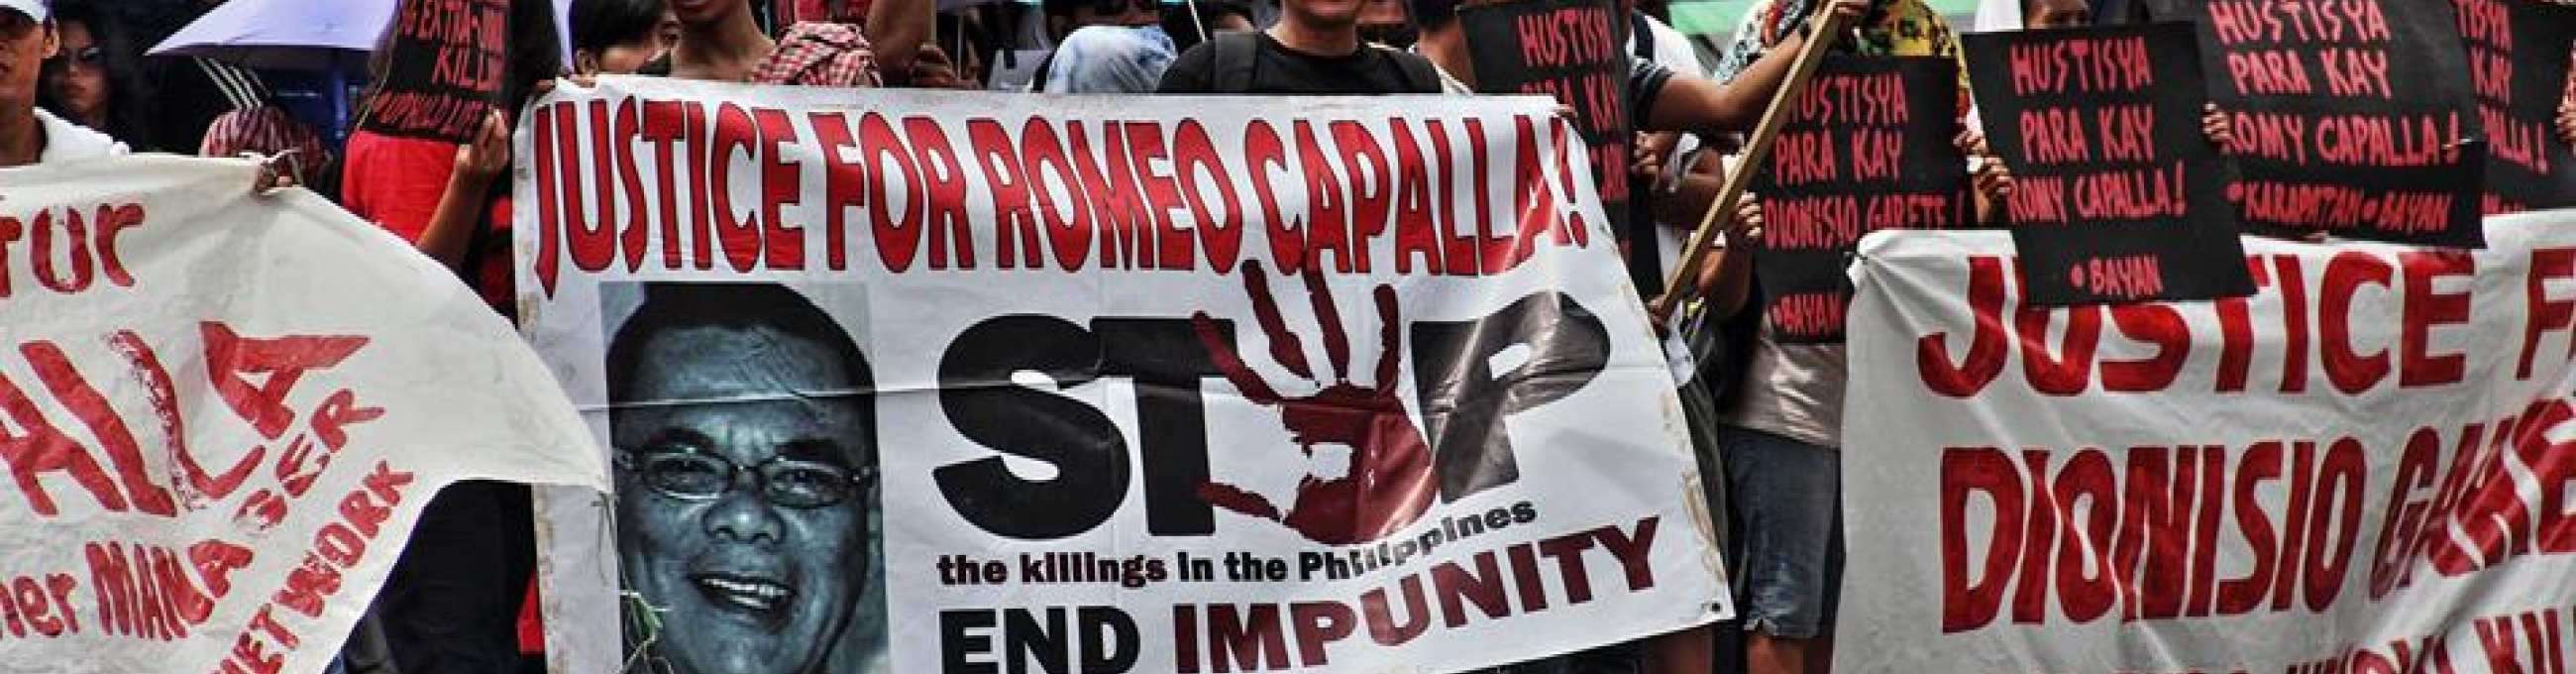 Supporters of Capalla and Garete calling for justice and end to political repression among Panay Fair Traders.   Photo: Karapatan